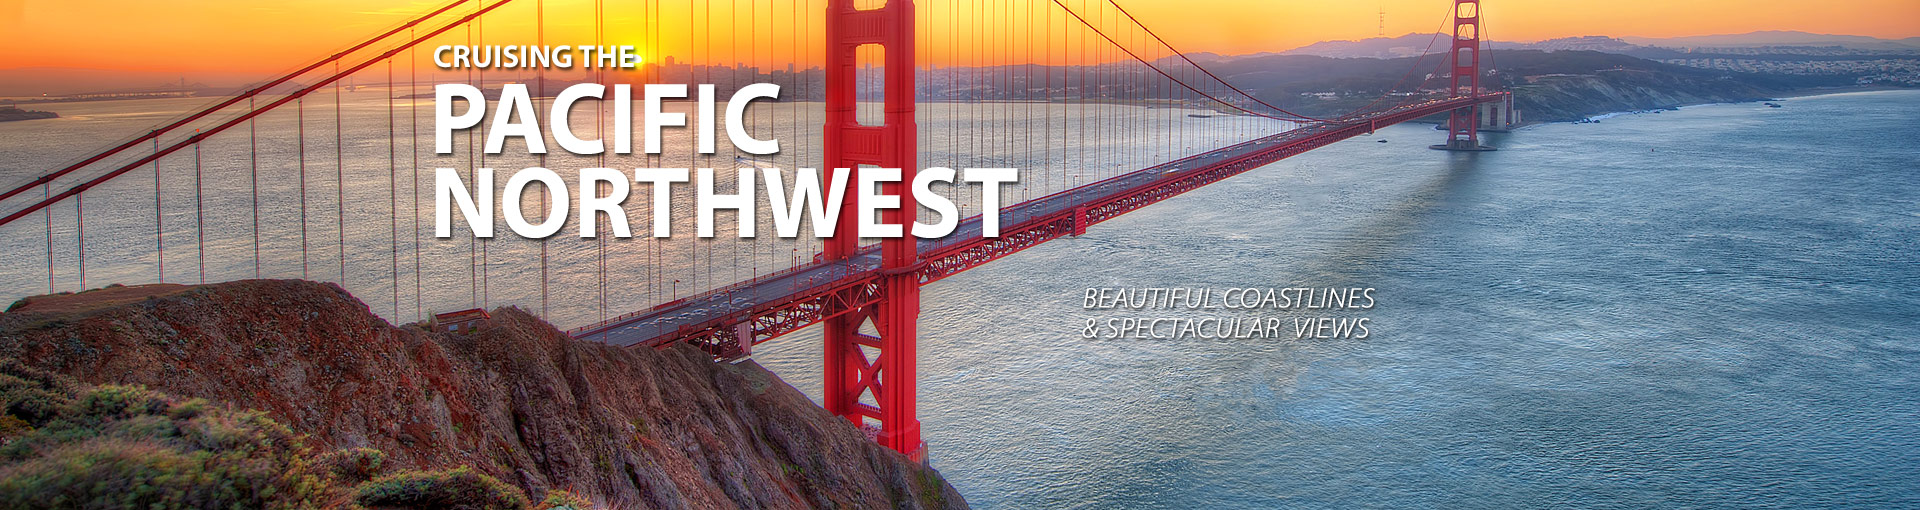 Cruise along the Pacific Coast of the US